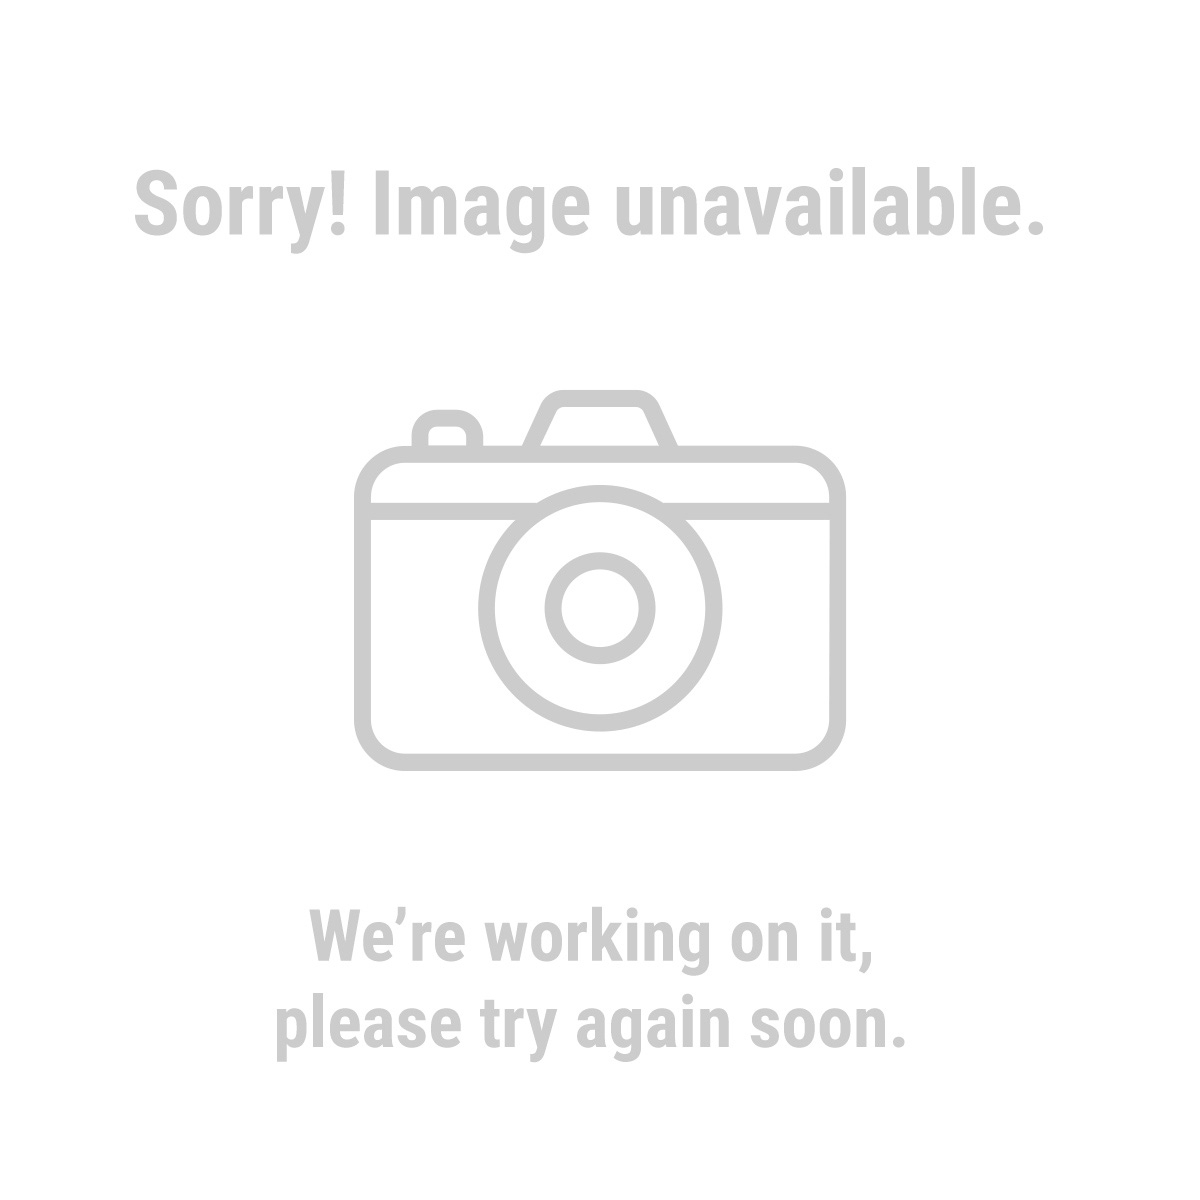 Warrior 61504 2 in. Fine Grade Fiber Surface Conditioning Discs 5 Pc